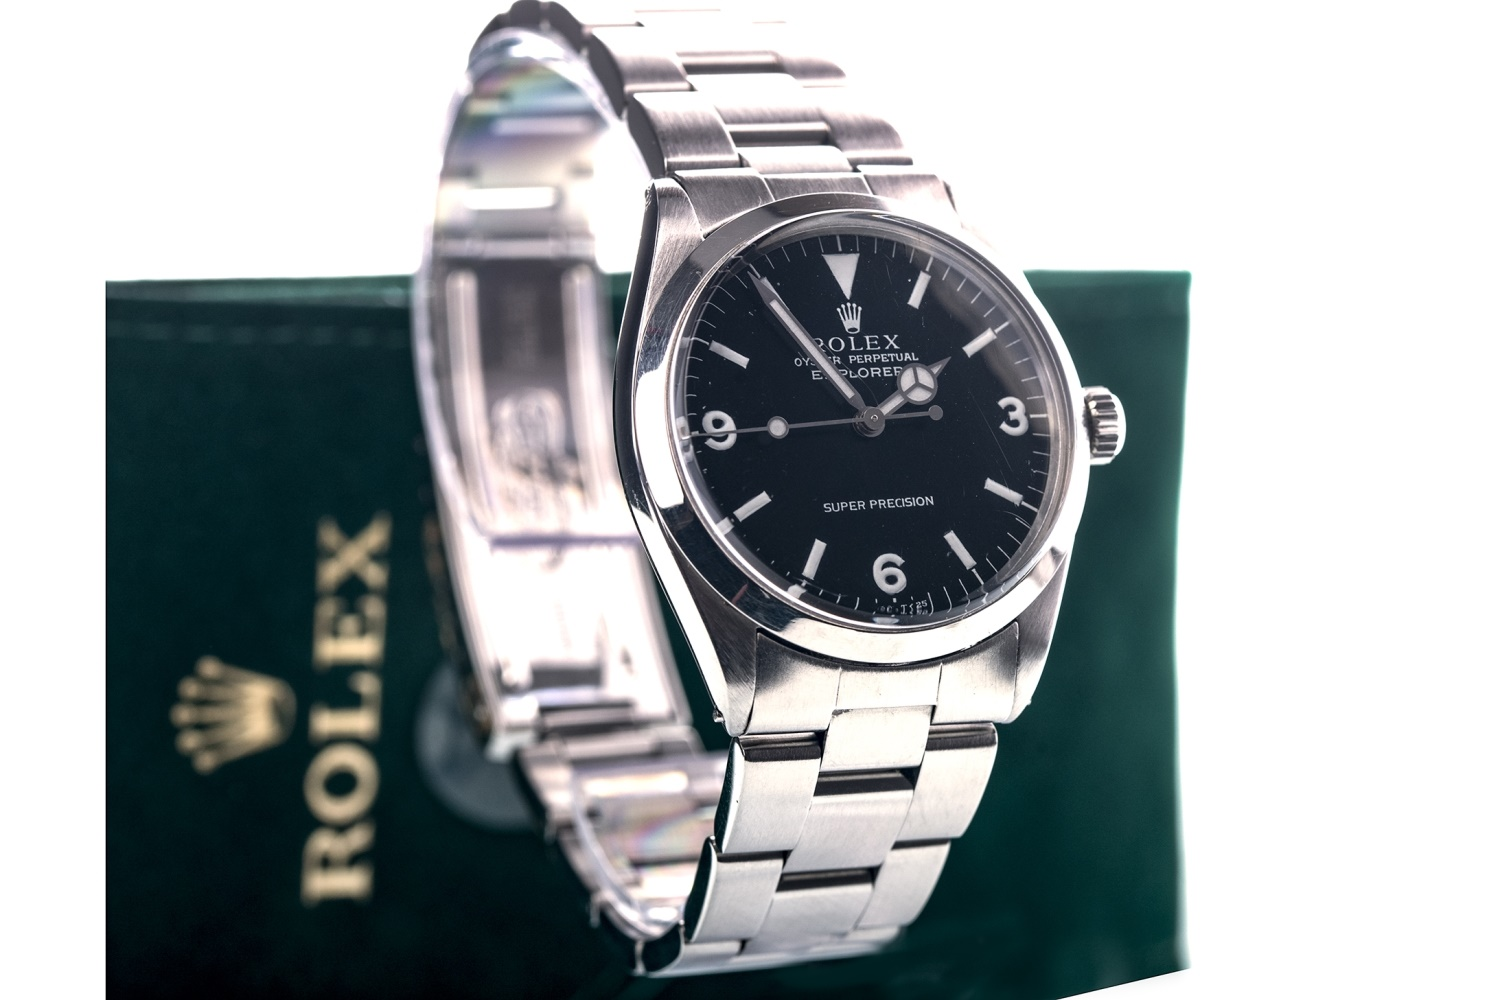 Lot 862 - A GENTLEMAN'S ROLEX OYSTER PERPETUAL EXPLORER SUPER PRECISION STAINLESS STEEL AUTOMATIC WRIST WATCH